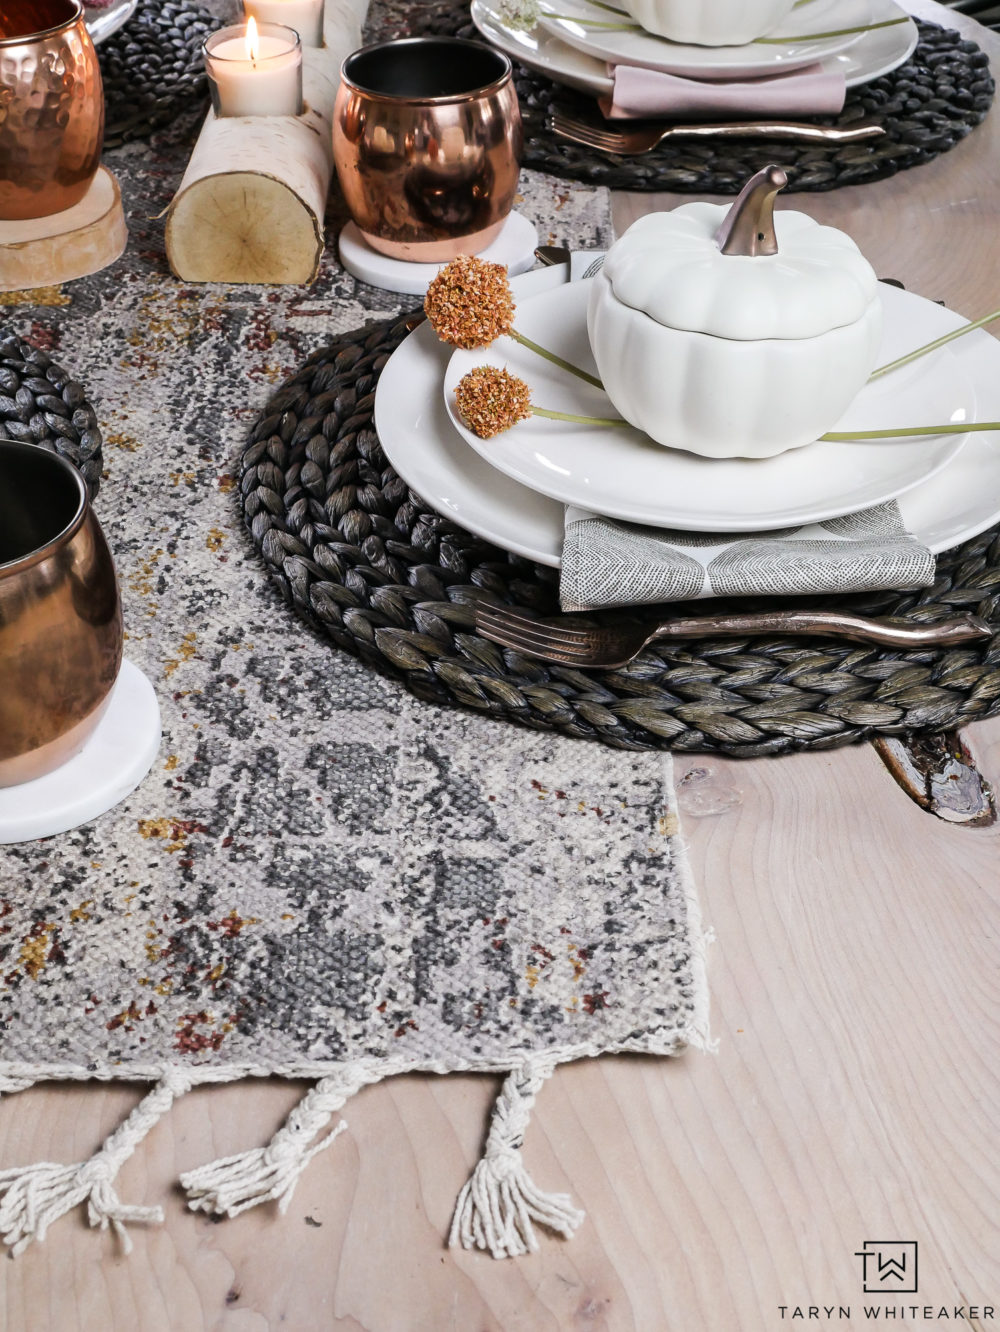 A fall table filled with soft earth tones for an unconventional fall tablescape. Love the mix of gray and orange for a modern fall table filled with texture.